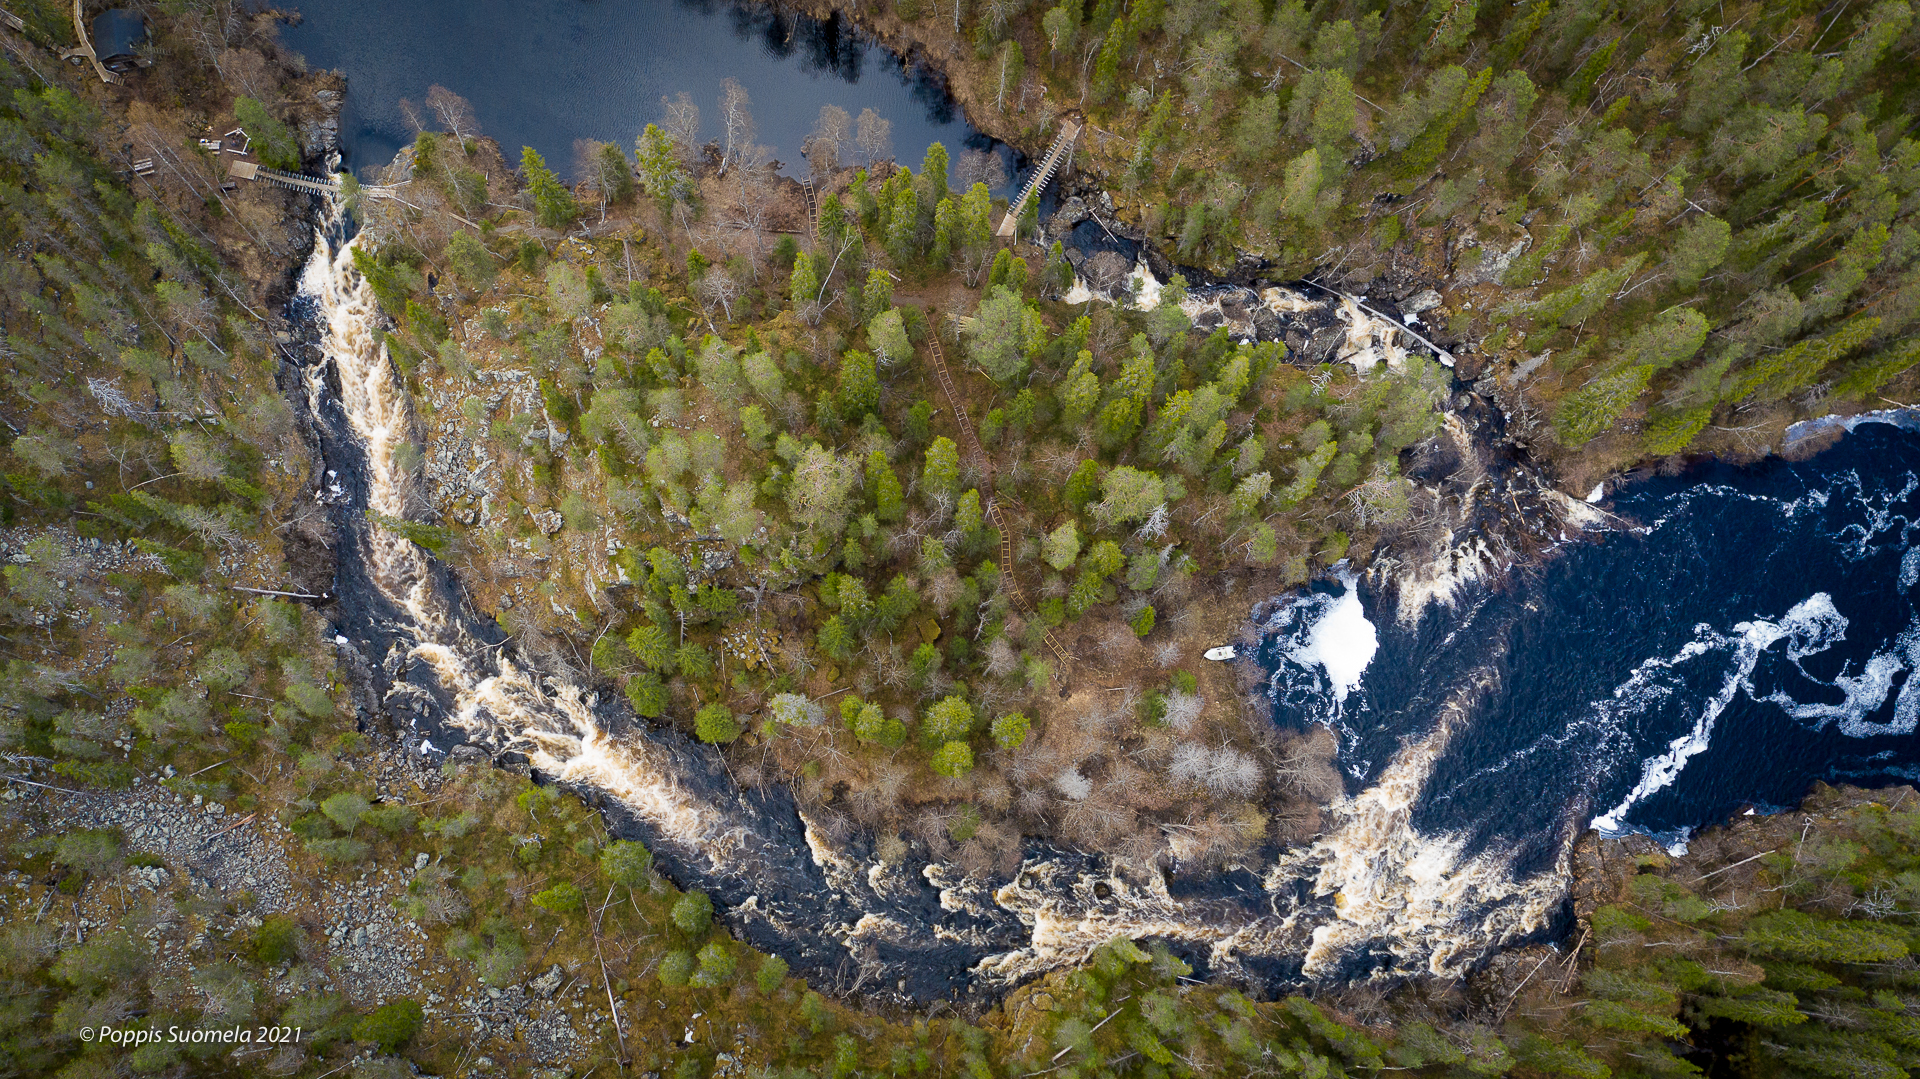 Wild water river, forests and suspension birdges from the bird's point of view.